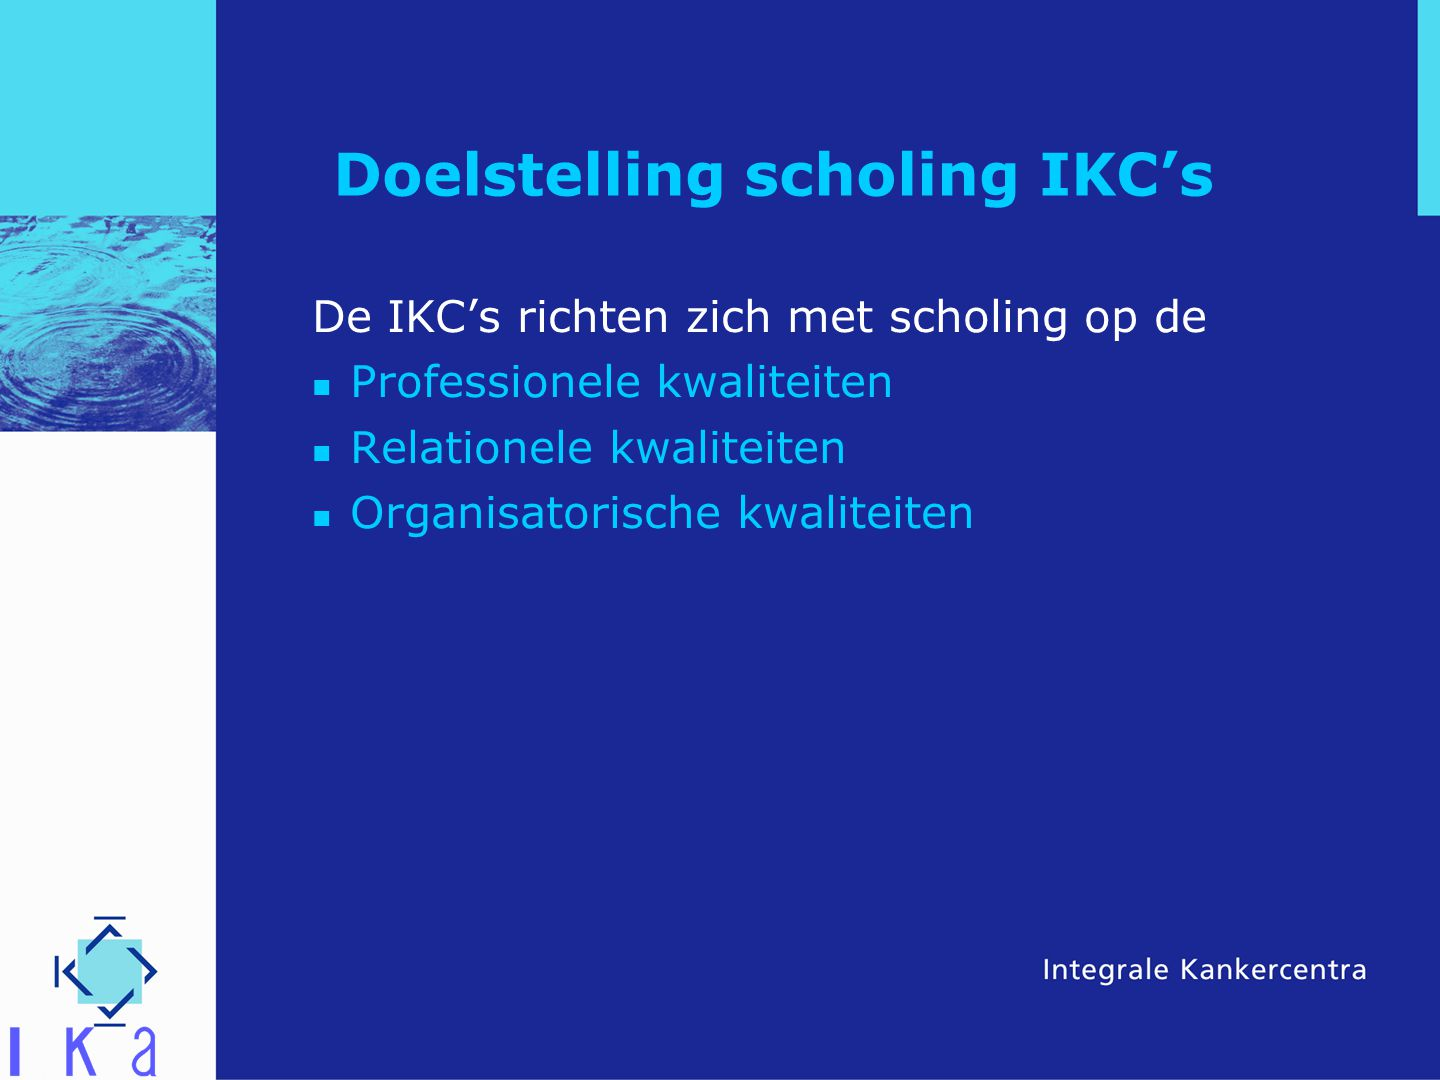 Doelstelling scholing IKC's